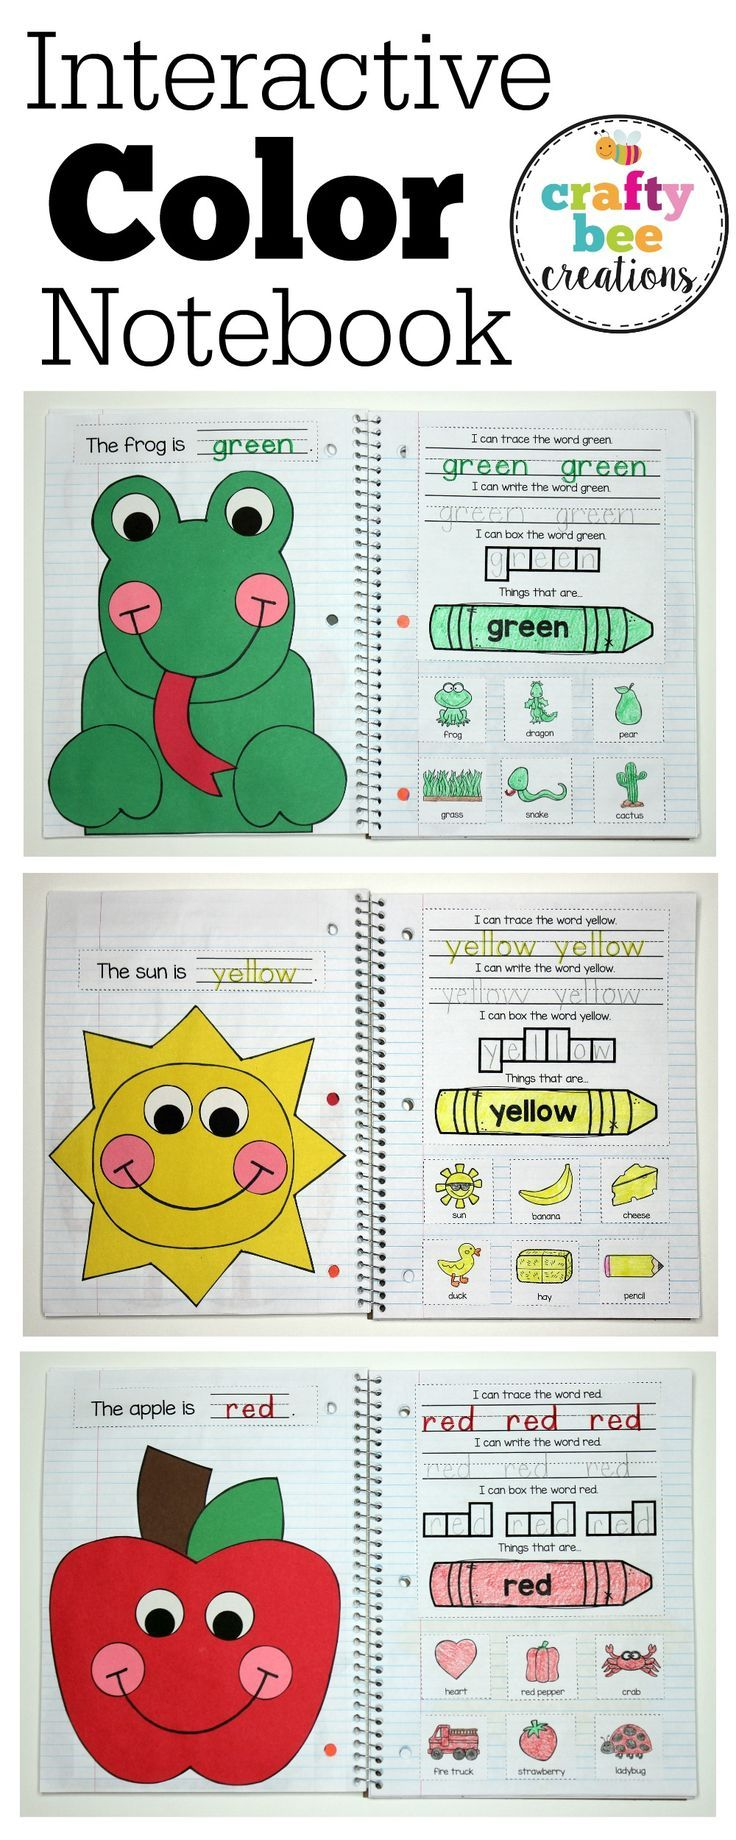 This is an Interactive Color Notebook that has crafts, writing, and color recognition for 11 different colors.  Makes for a great end of the year piece!